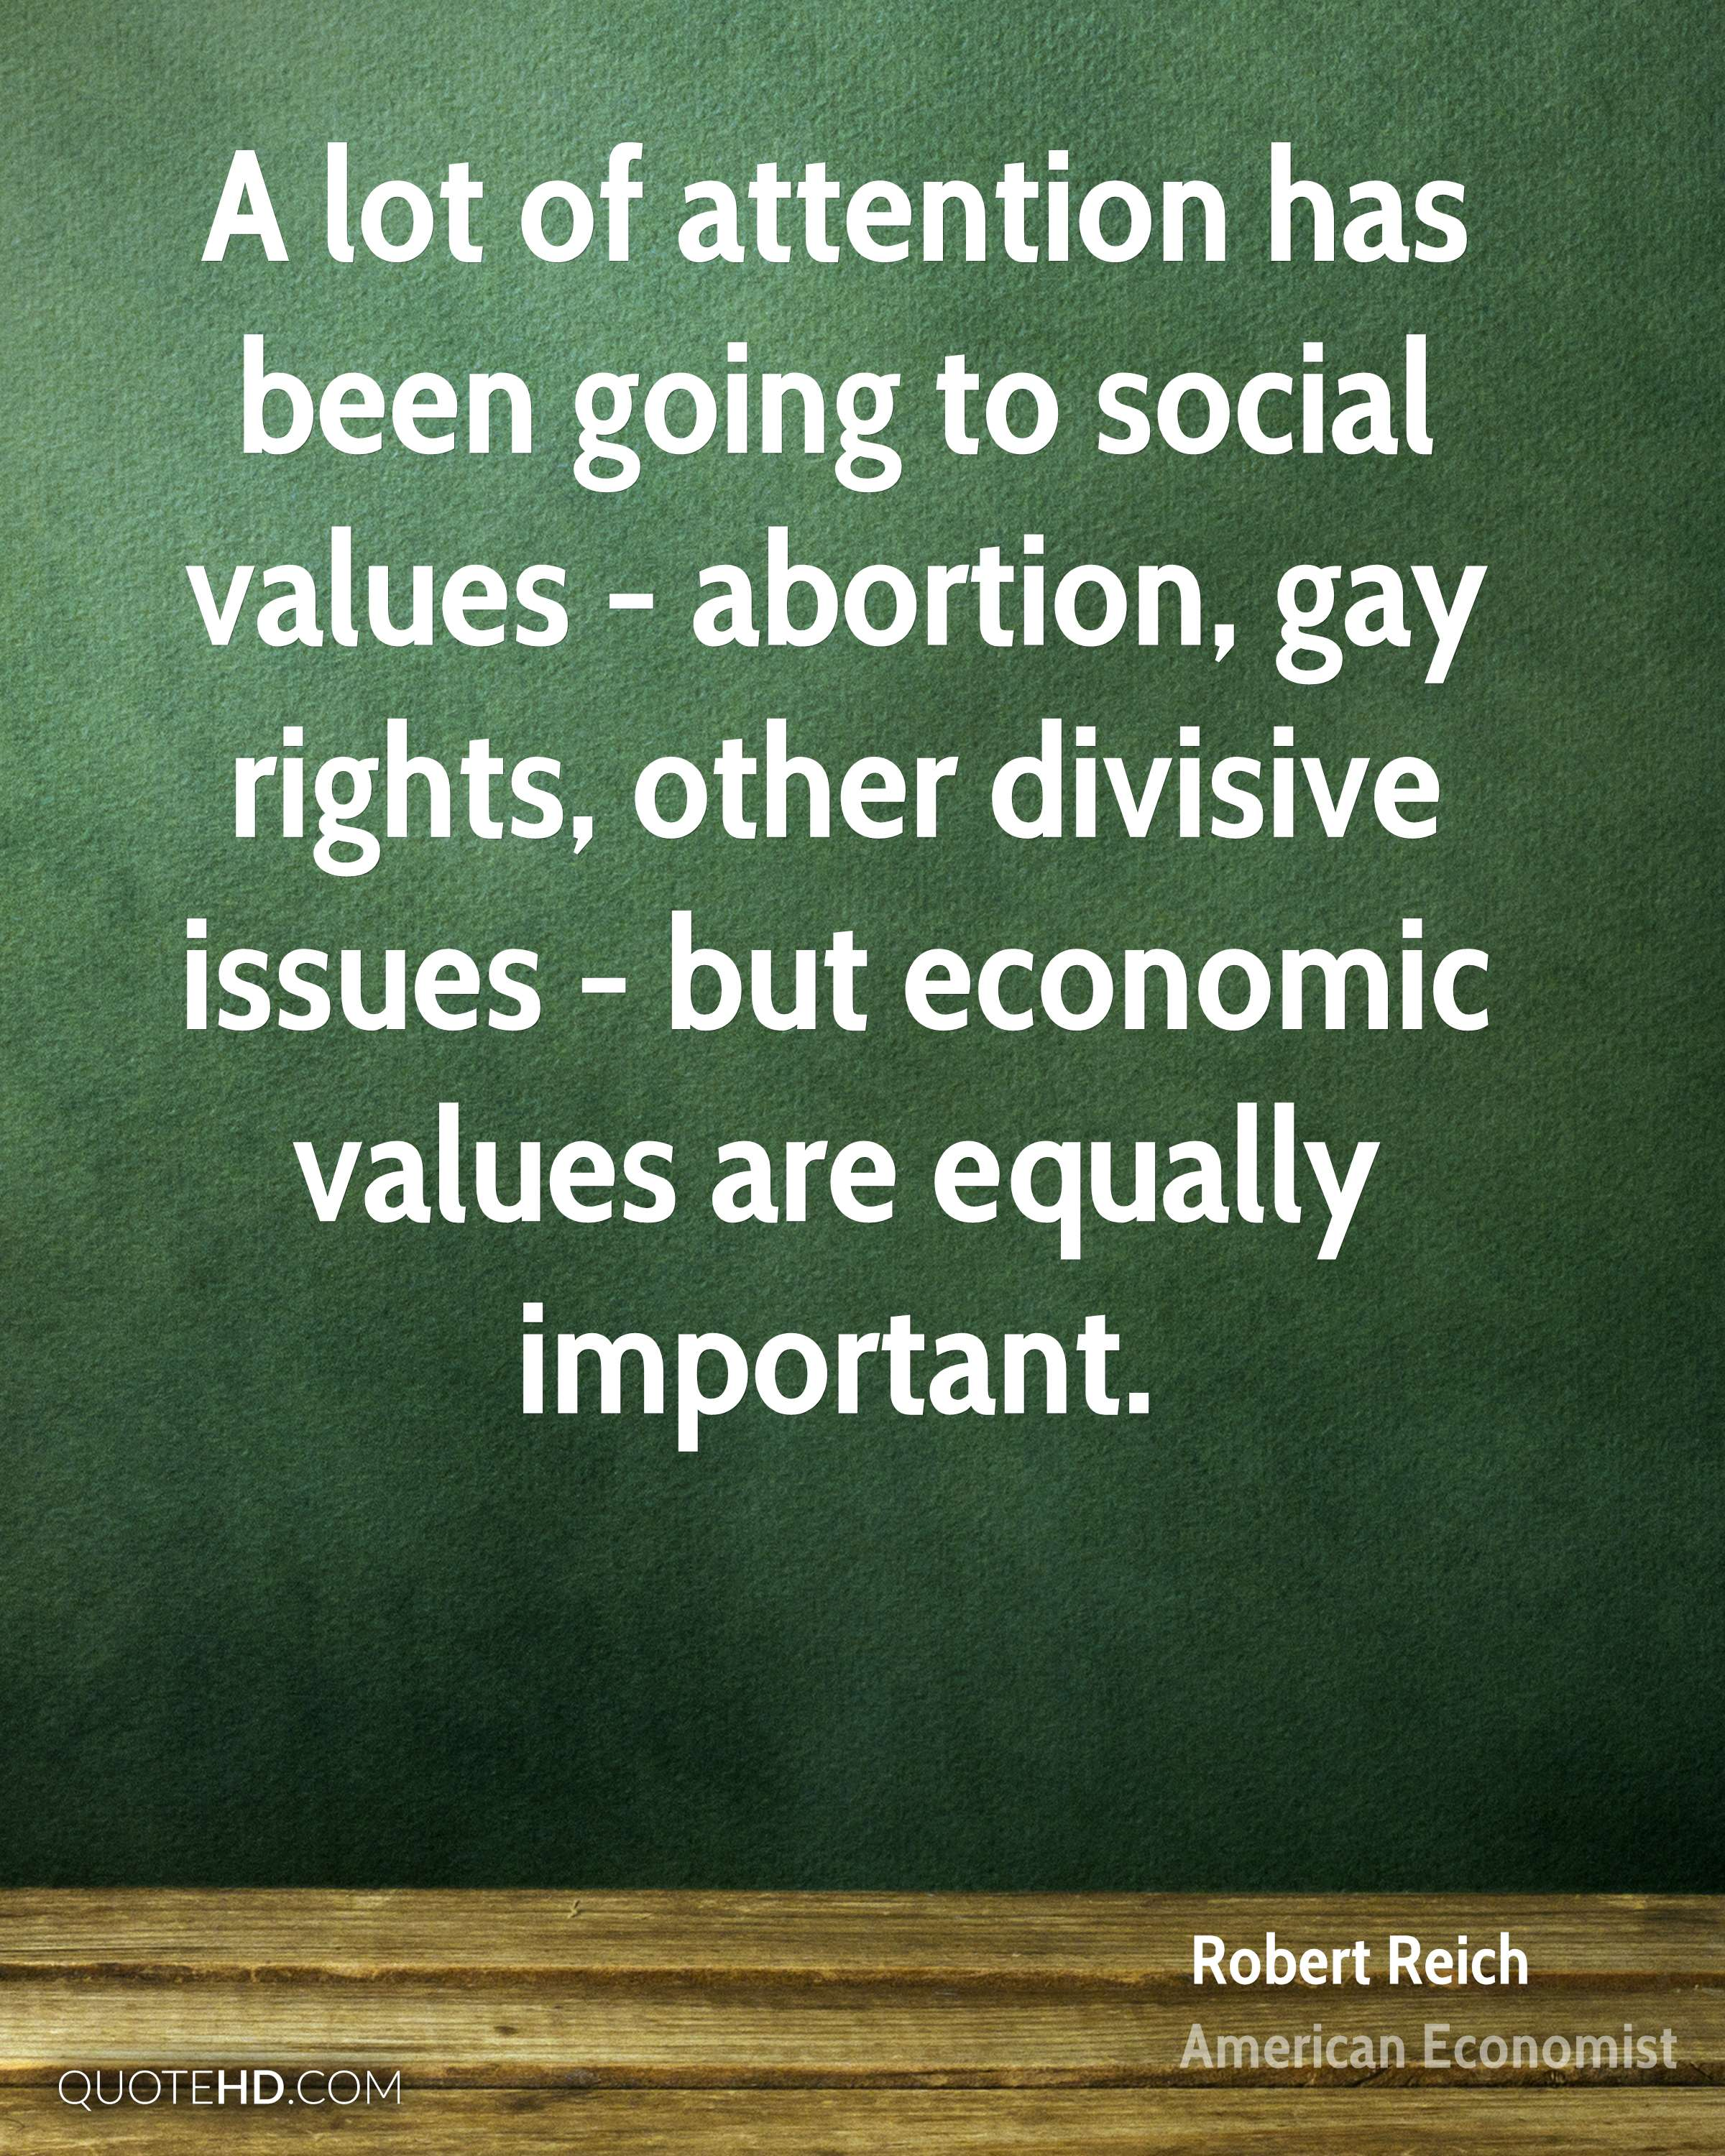 A lot of attention has been going to social values - abortion, gay rights, other divisive issues - but economic values are equally important.